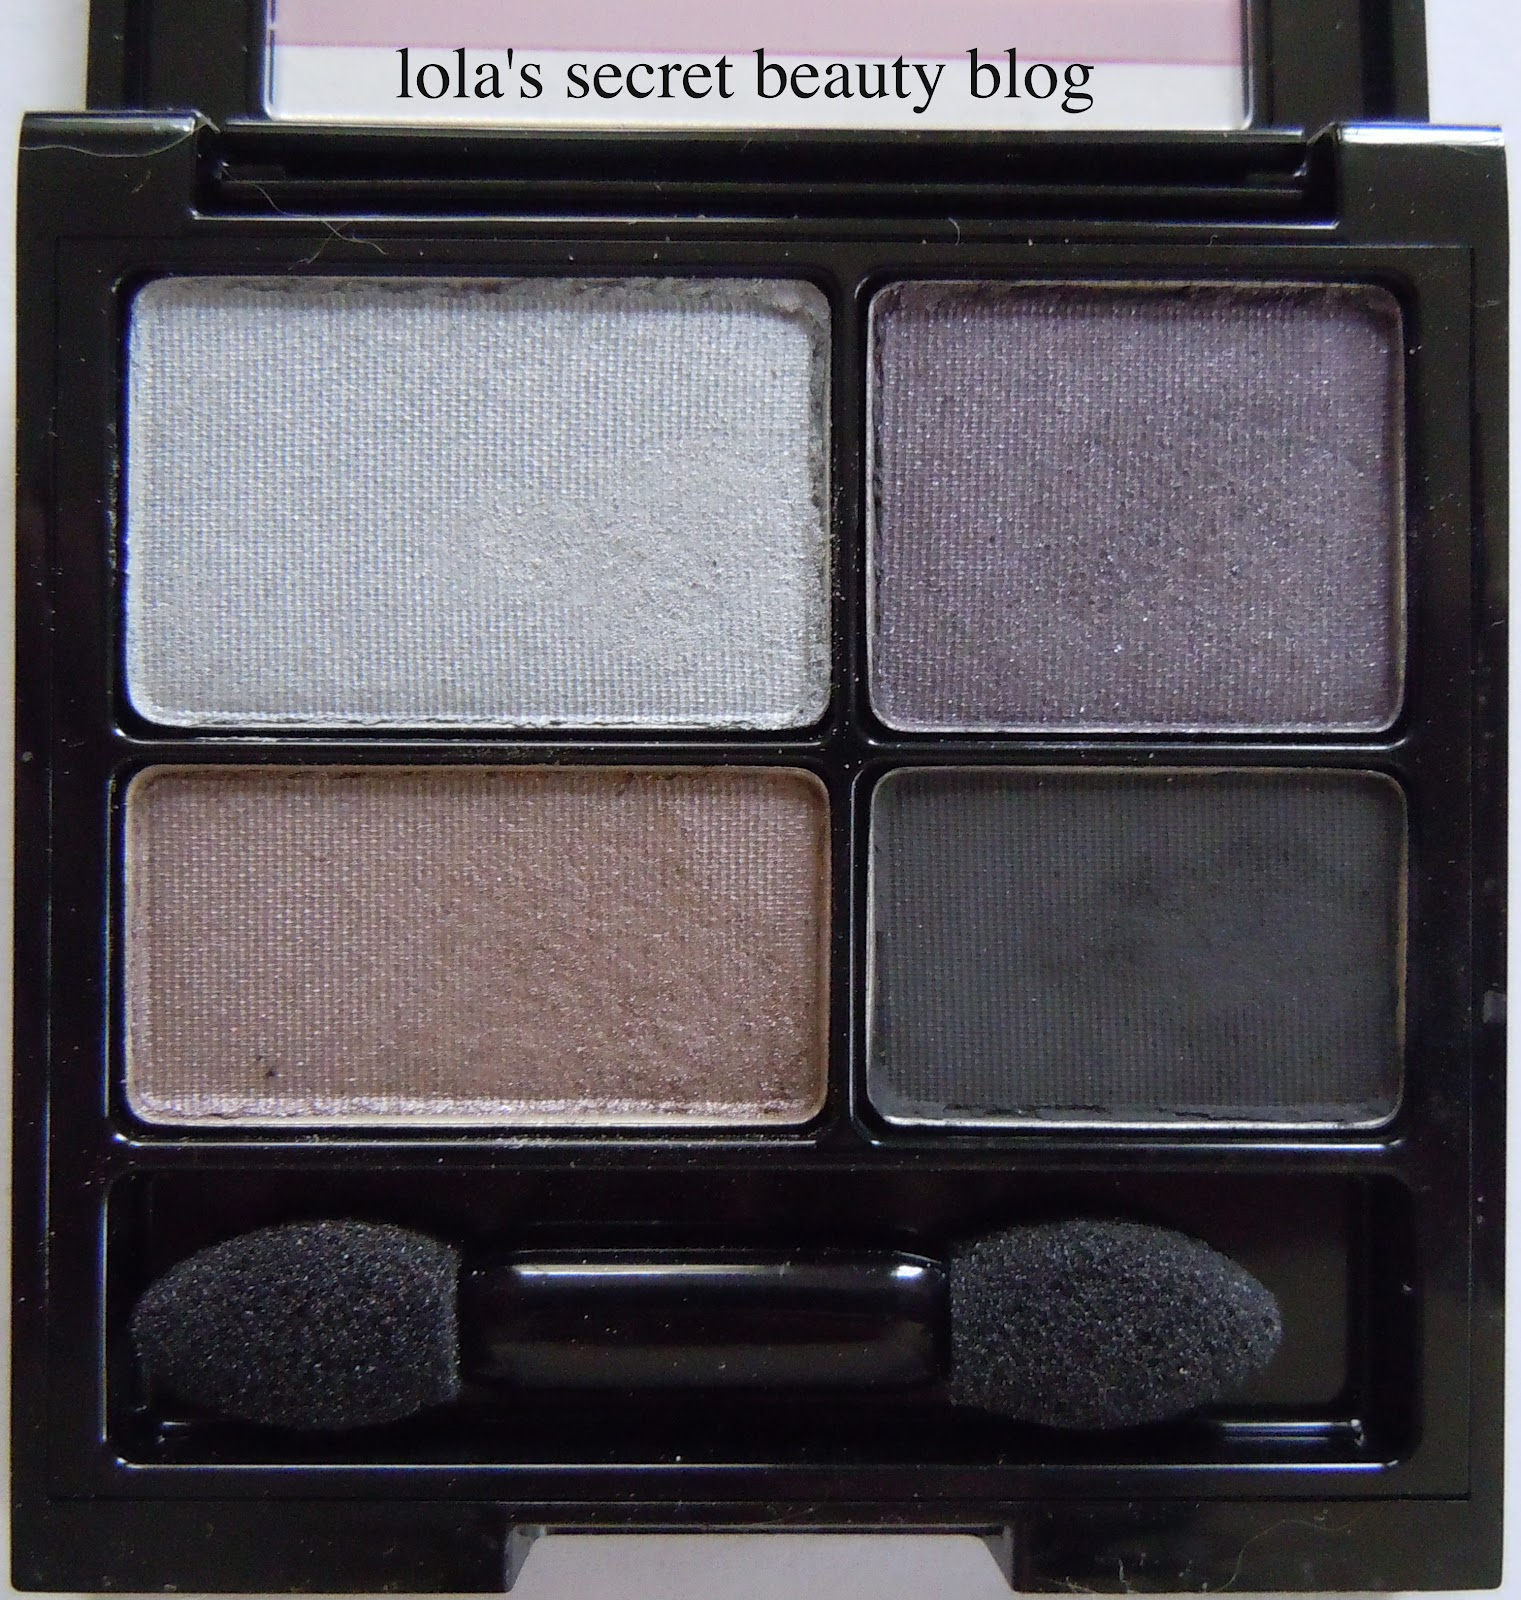 Lolas secret beauty blog revlon colorstay 16 hour eye shadow siren is a definite cool blue based quad so if you are looking for any warmth in your eye shadows it wont be found here ccuart Images